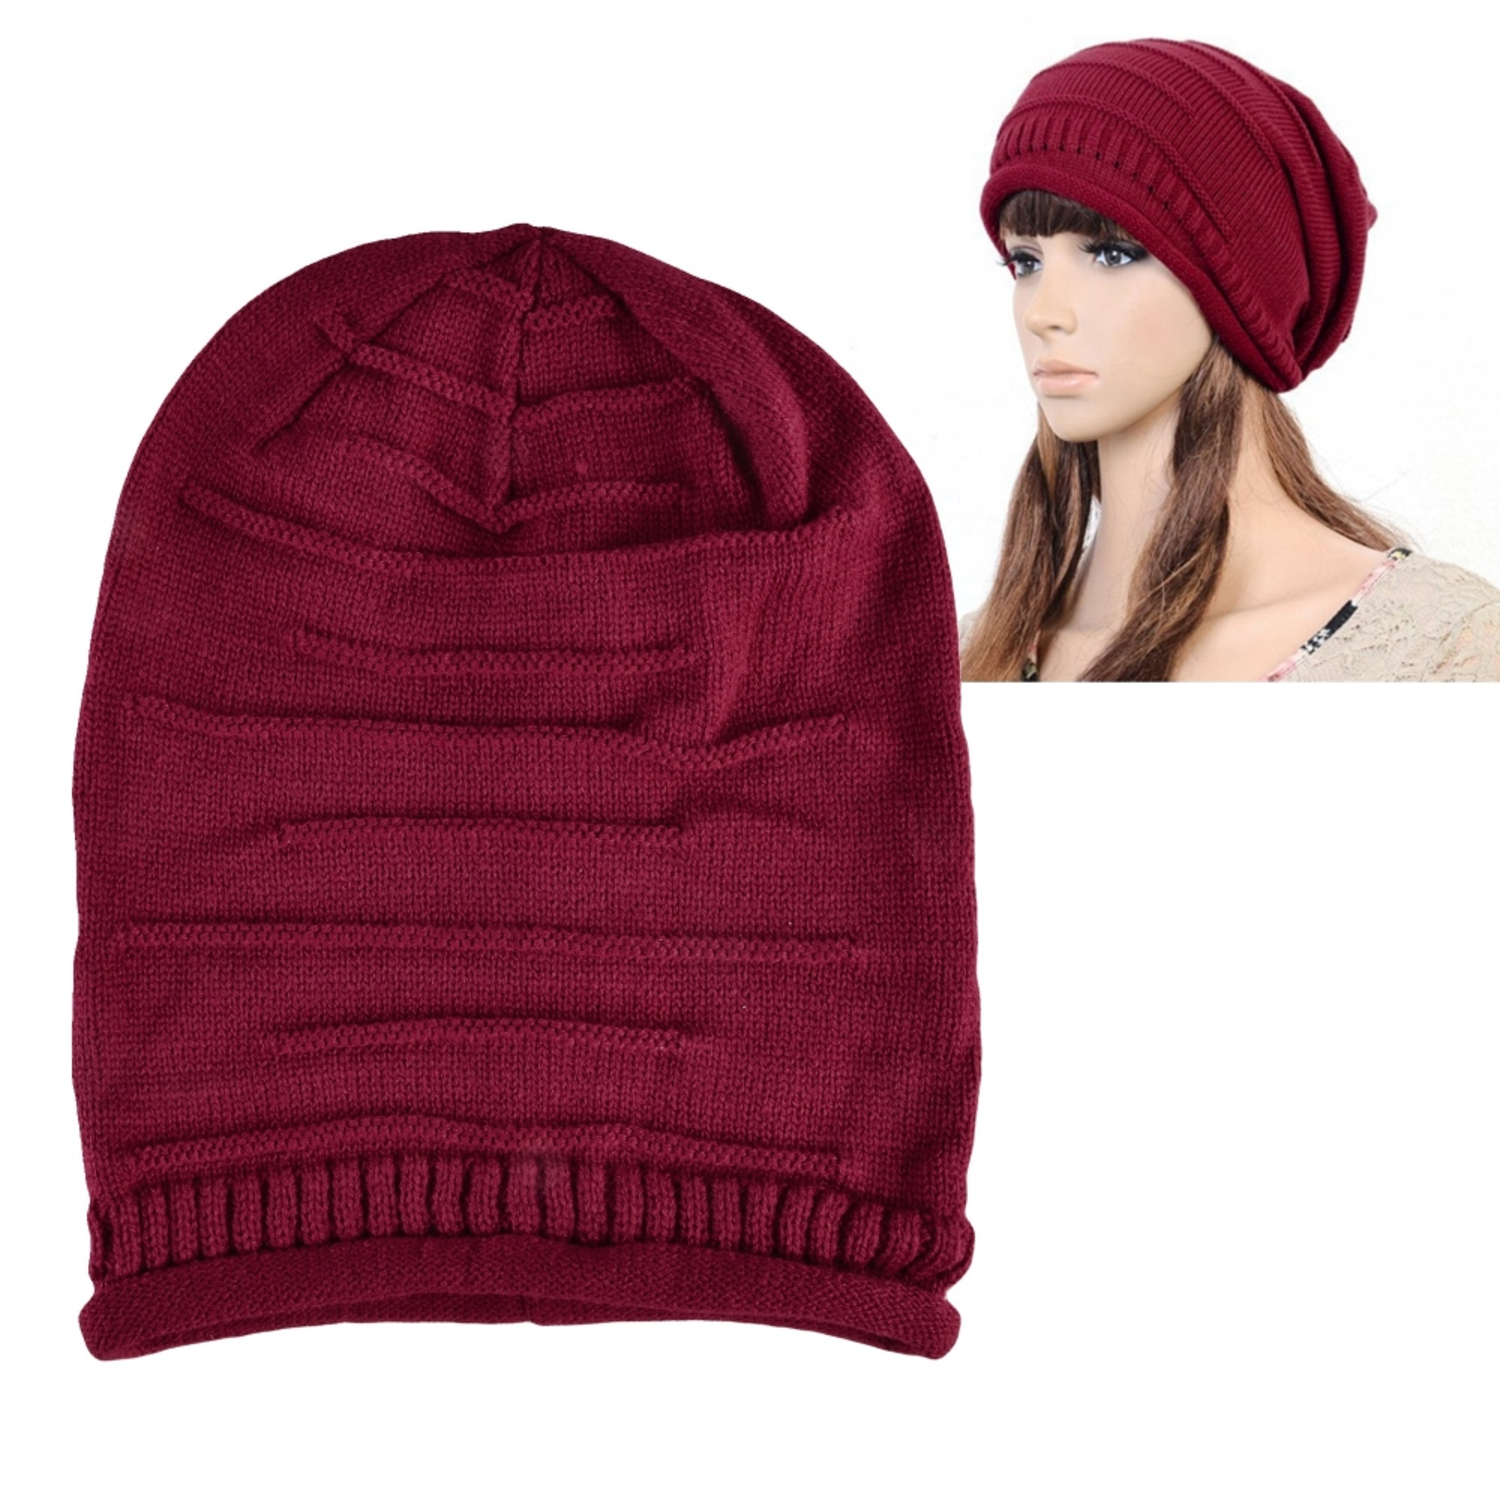 Zodaca Red Fashion Solid Color Unisex Womens Mens Knit Baggy Beanie Beret Hat Winter Warm Oversized Ski Cap